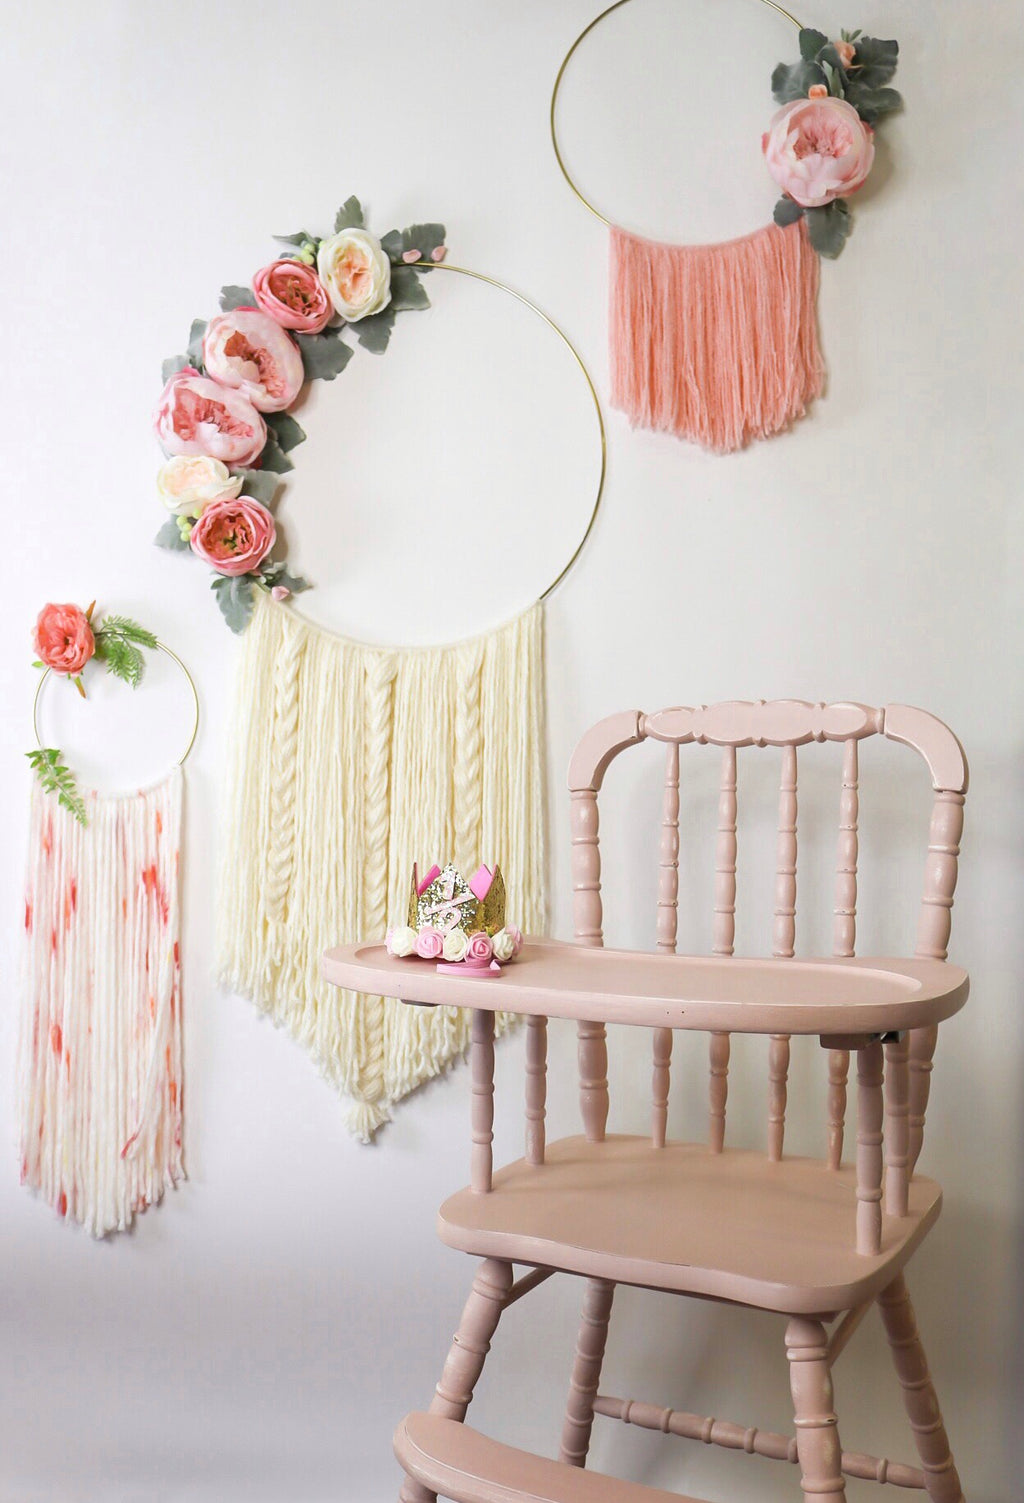 Wooden High Chair- Dusty Pink